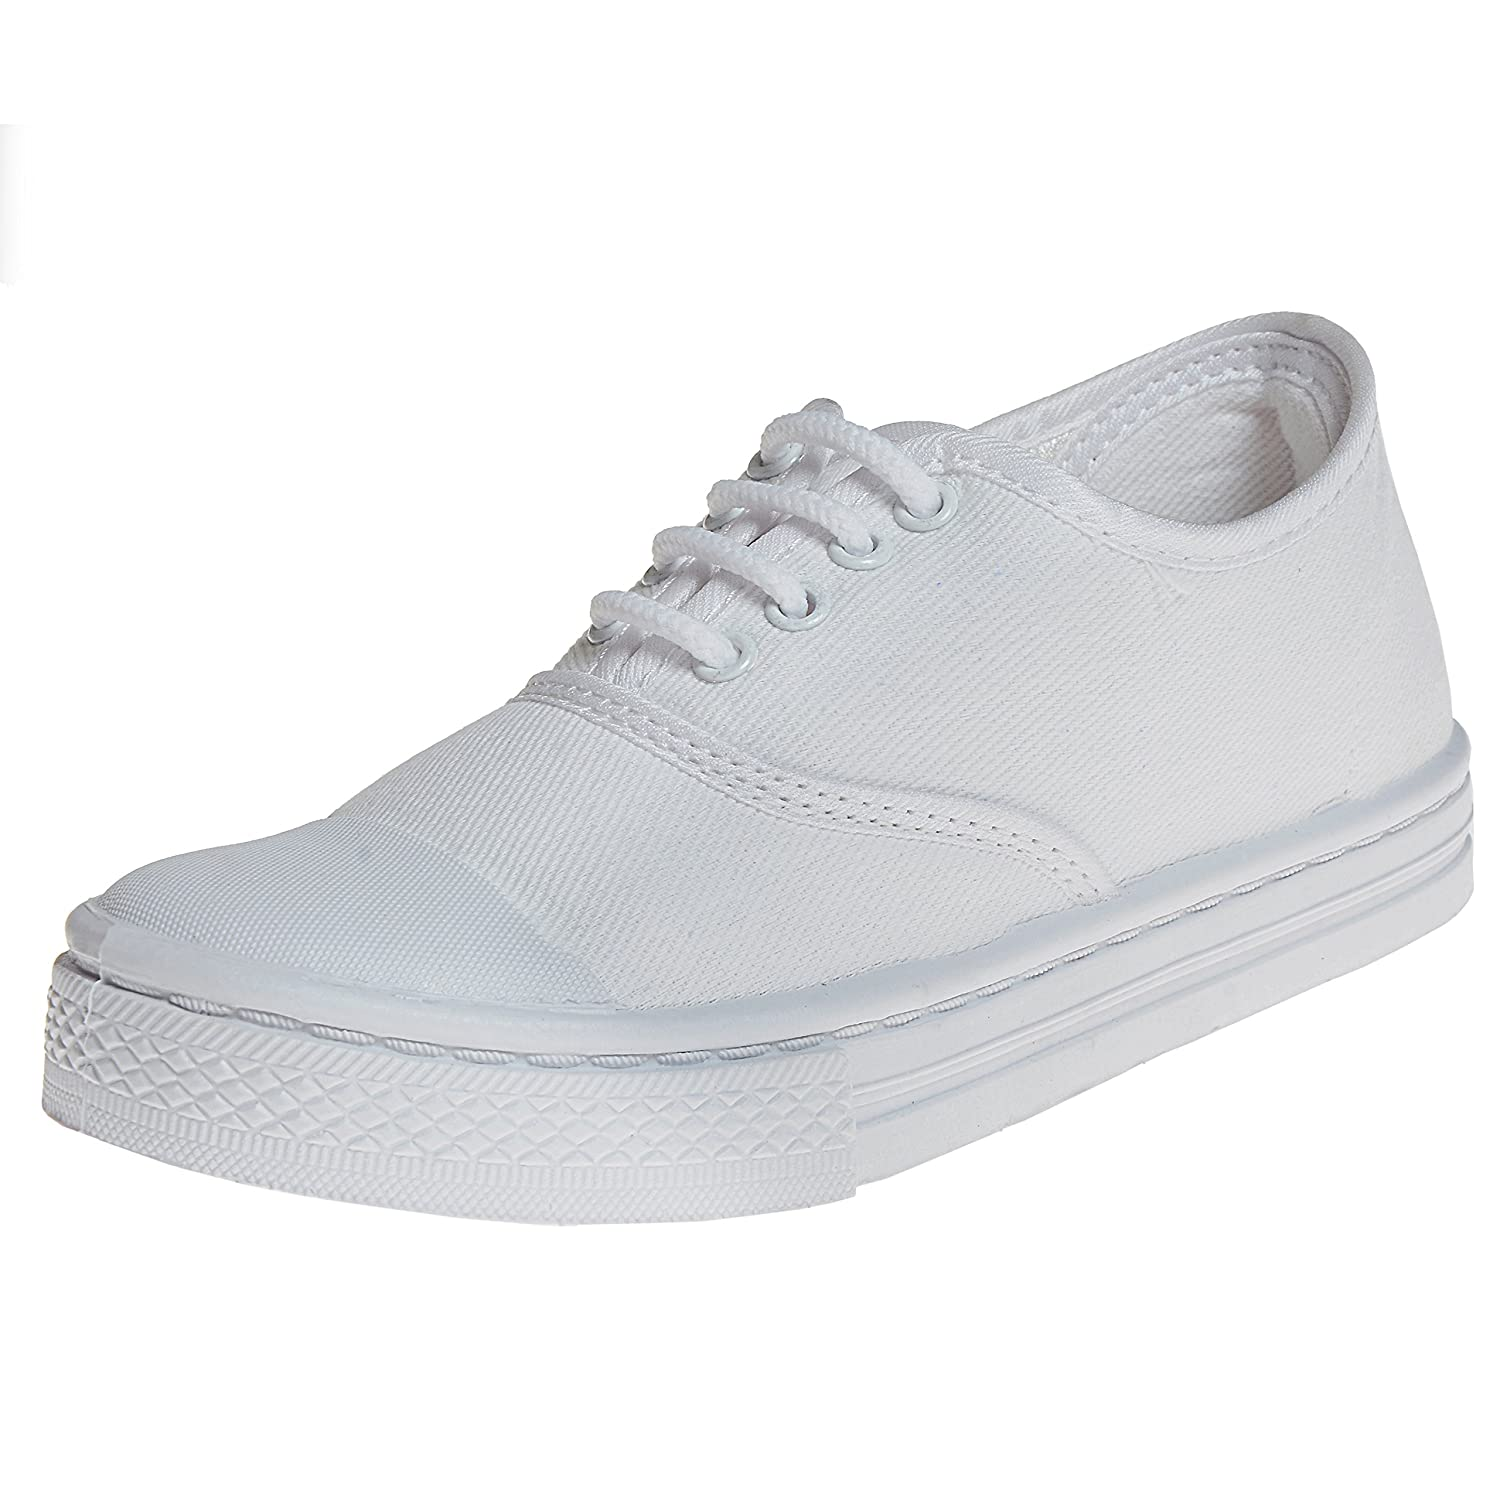 Buy Liberty Boys' School Shoes at Amazon.in